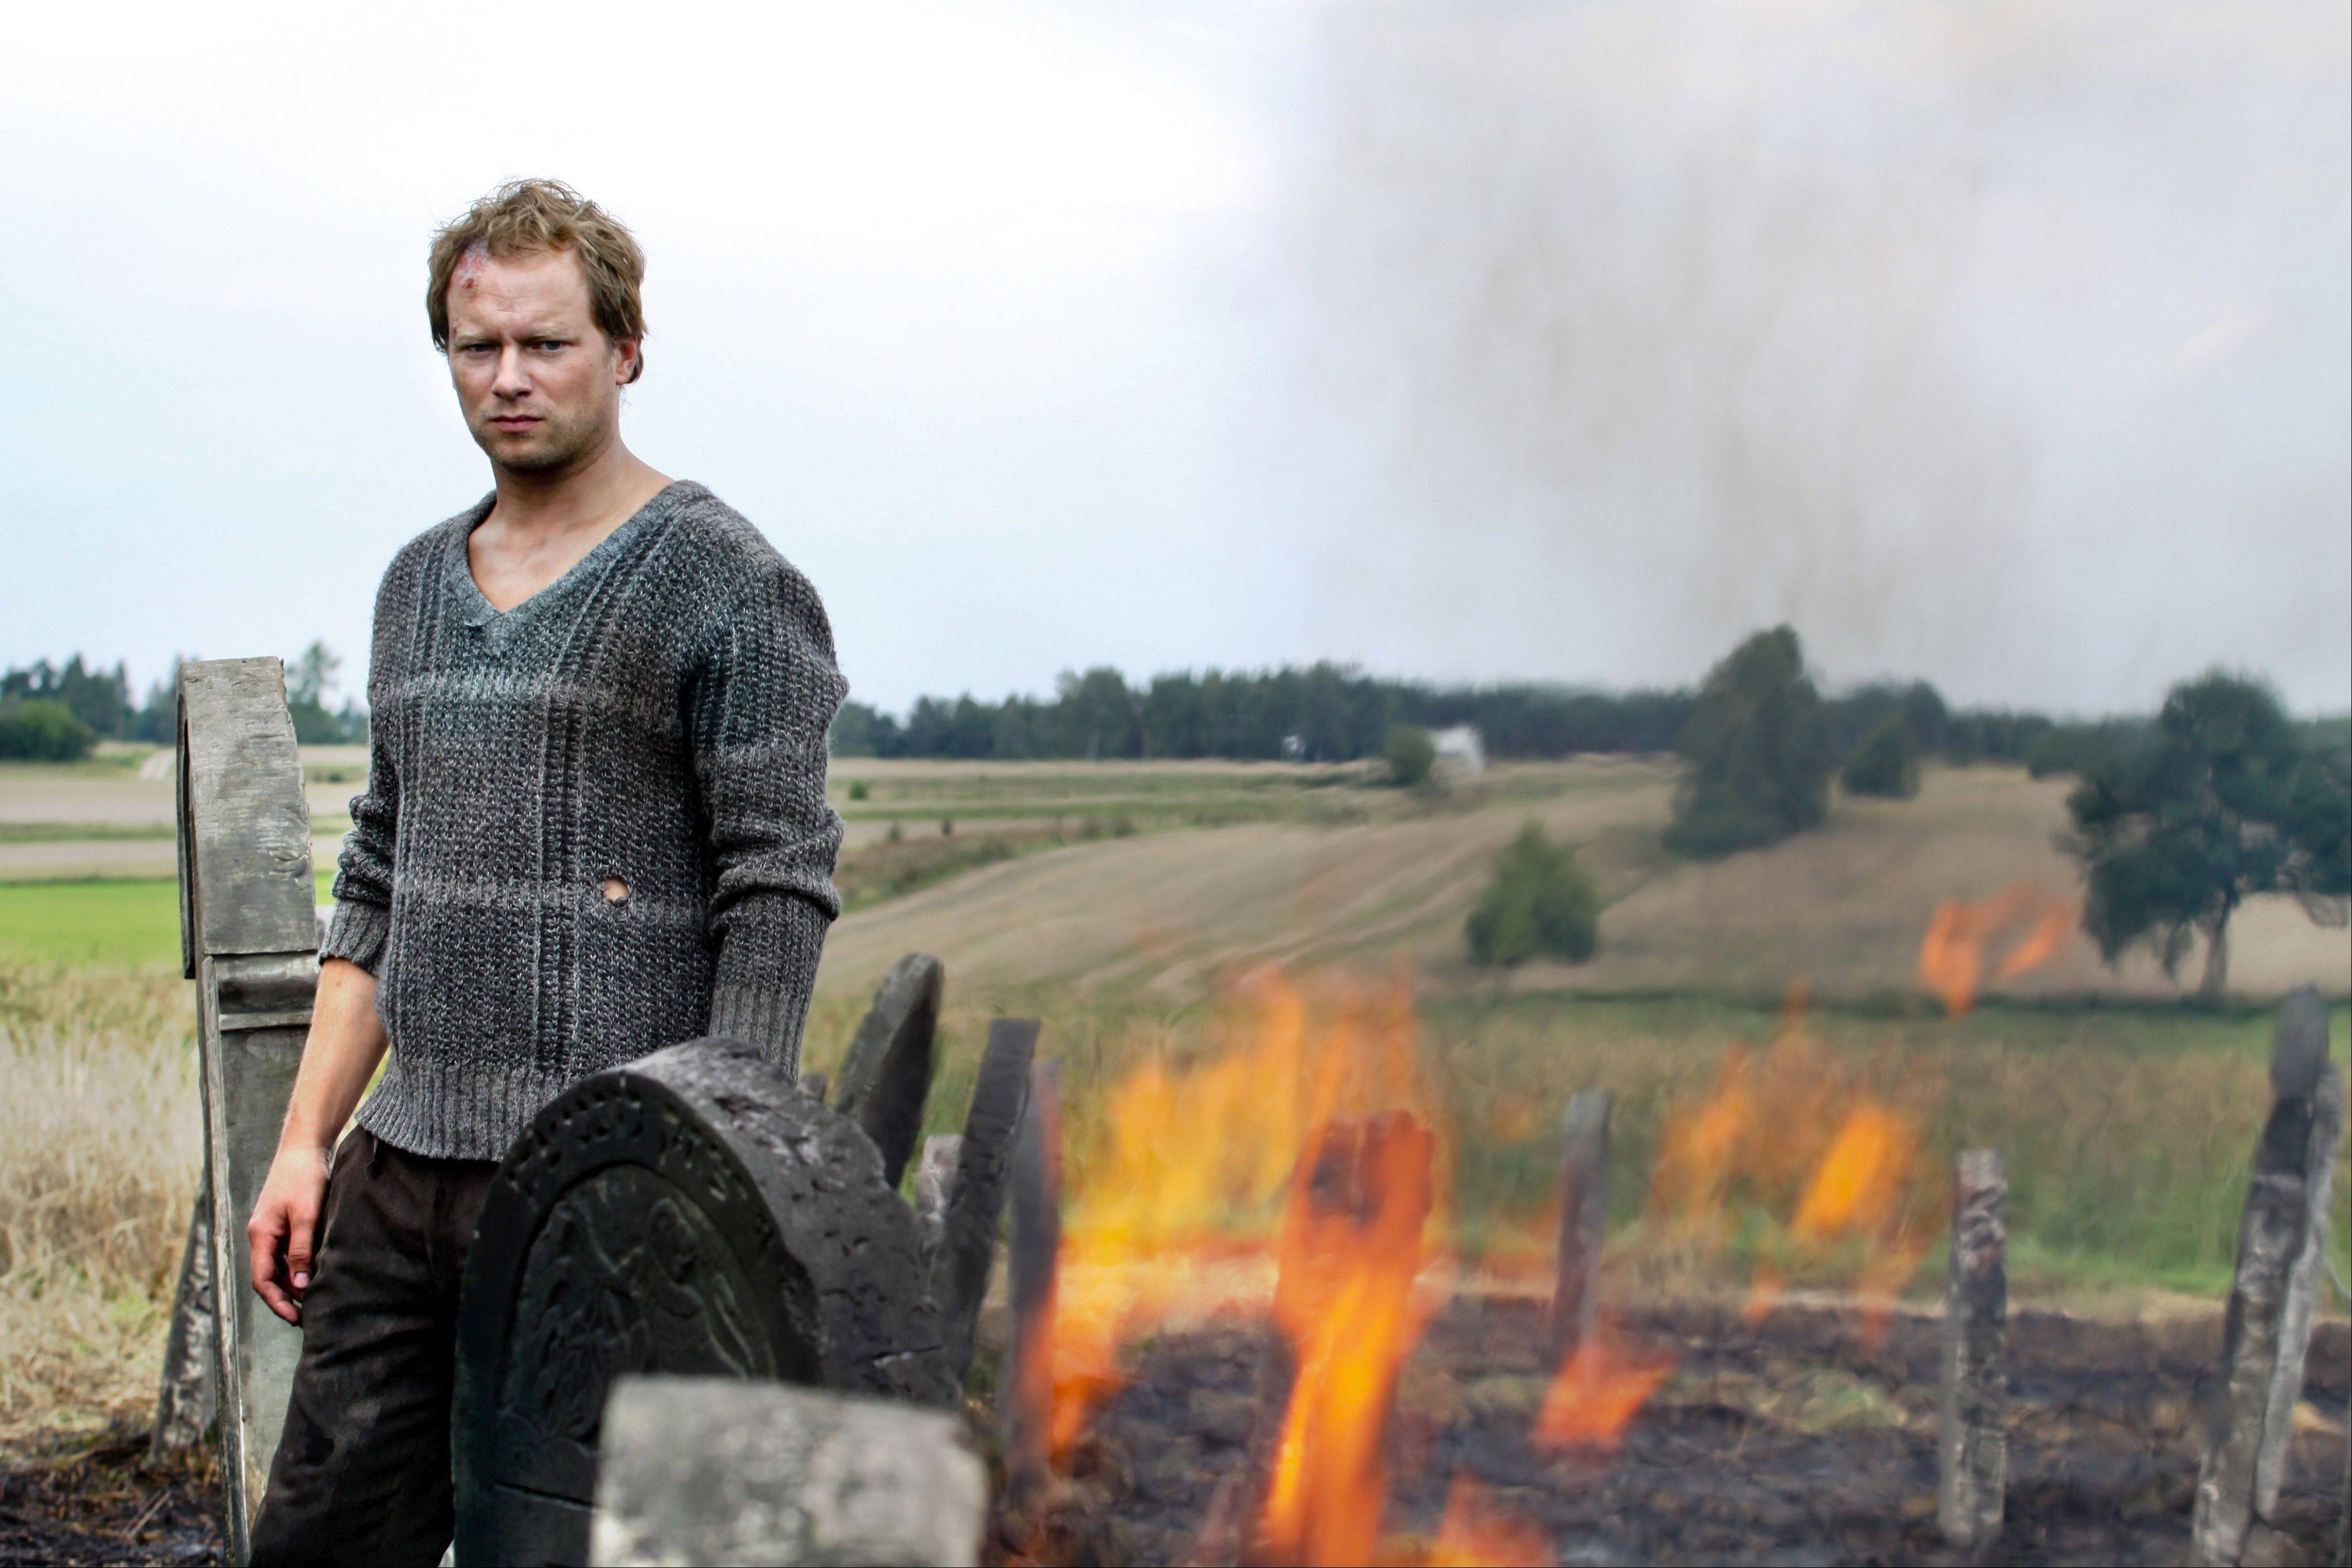 "Jozek Kalina (Maciej Stuhr) is compelled to return desecrated Jewish cemetery stones to their rightful places in Wladyshaw Pasikowski's fact-based Polish drama ""Aftermath."""